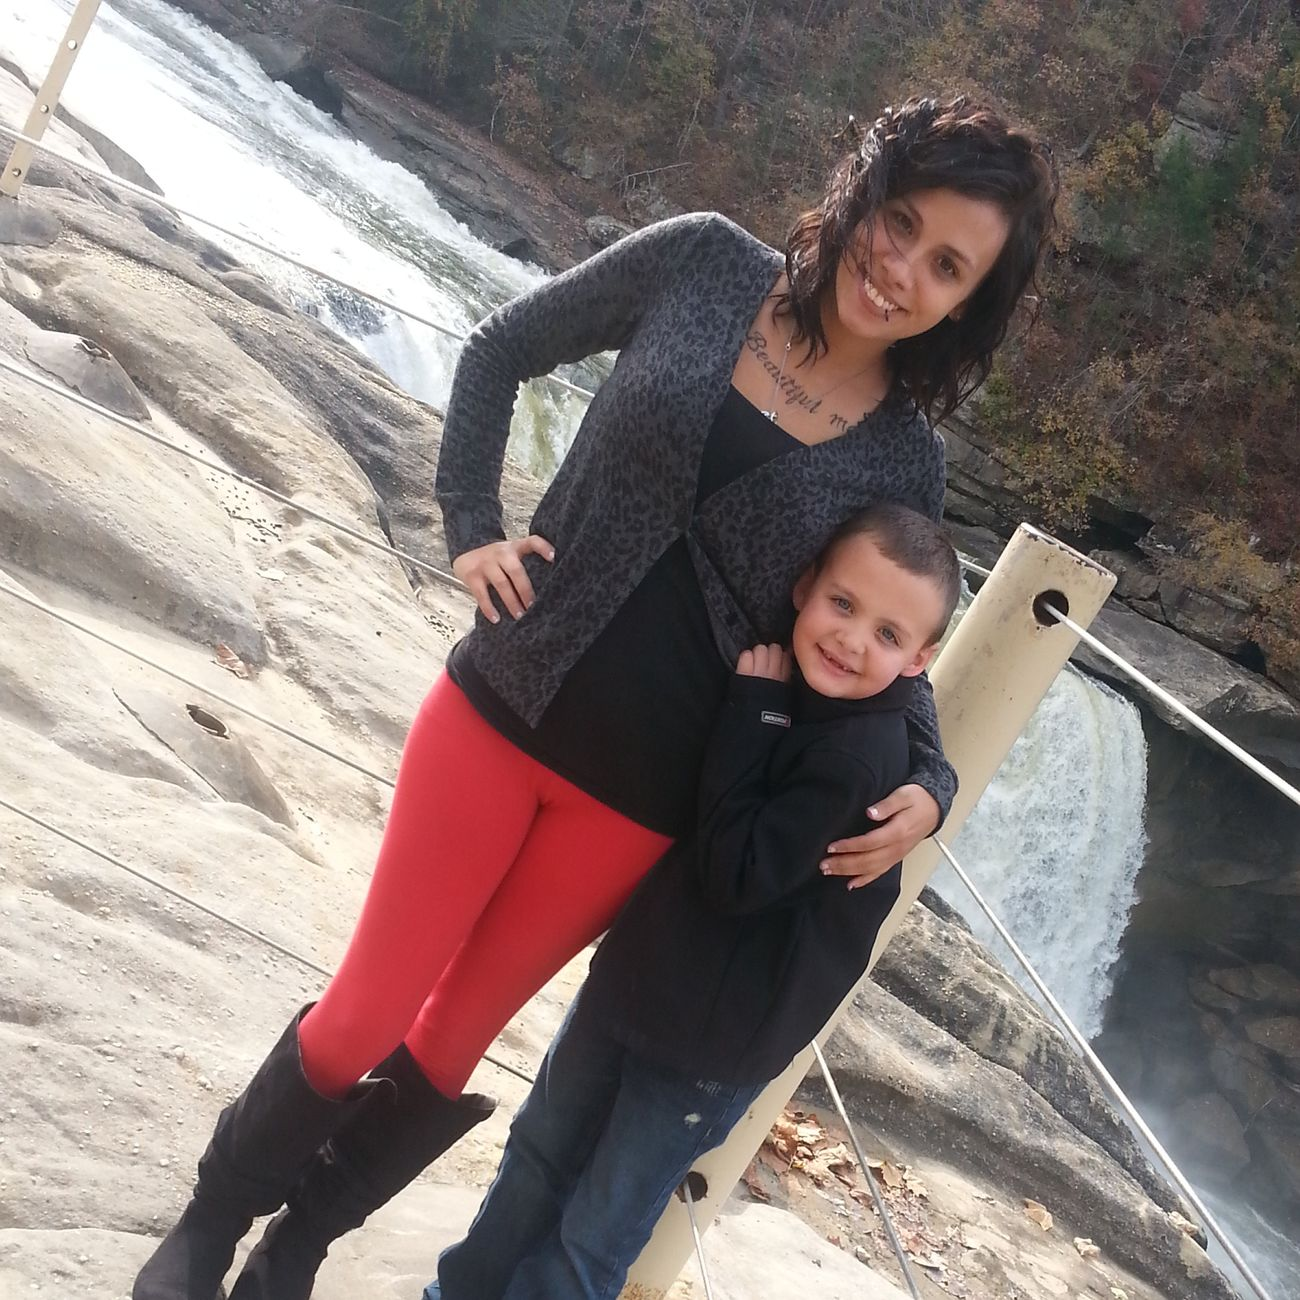 Nofilter Kentucky  Mommyandson Beautiful